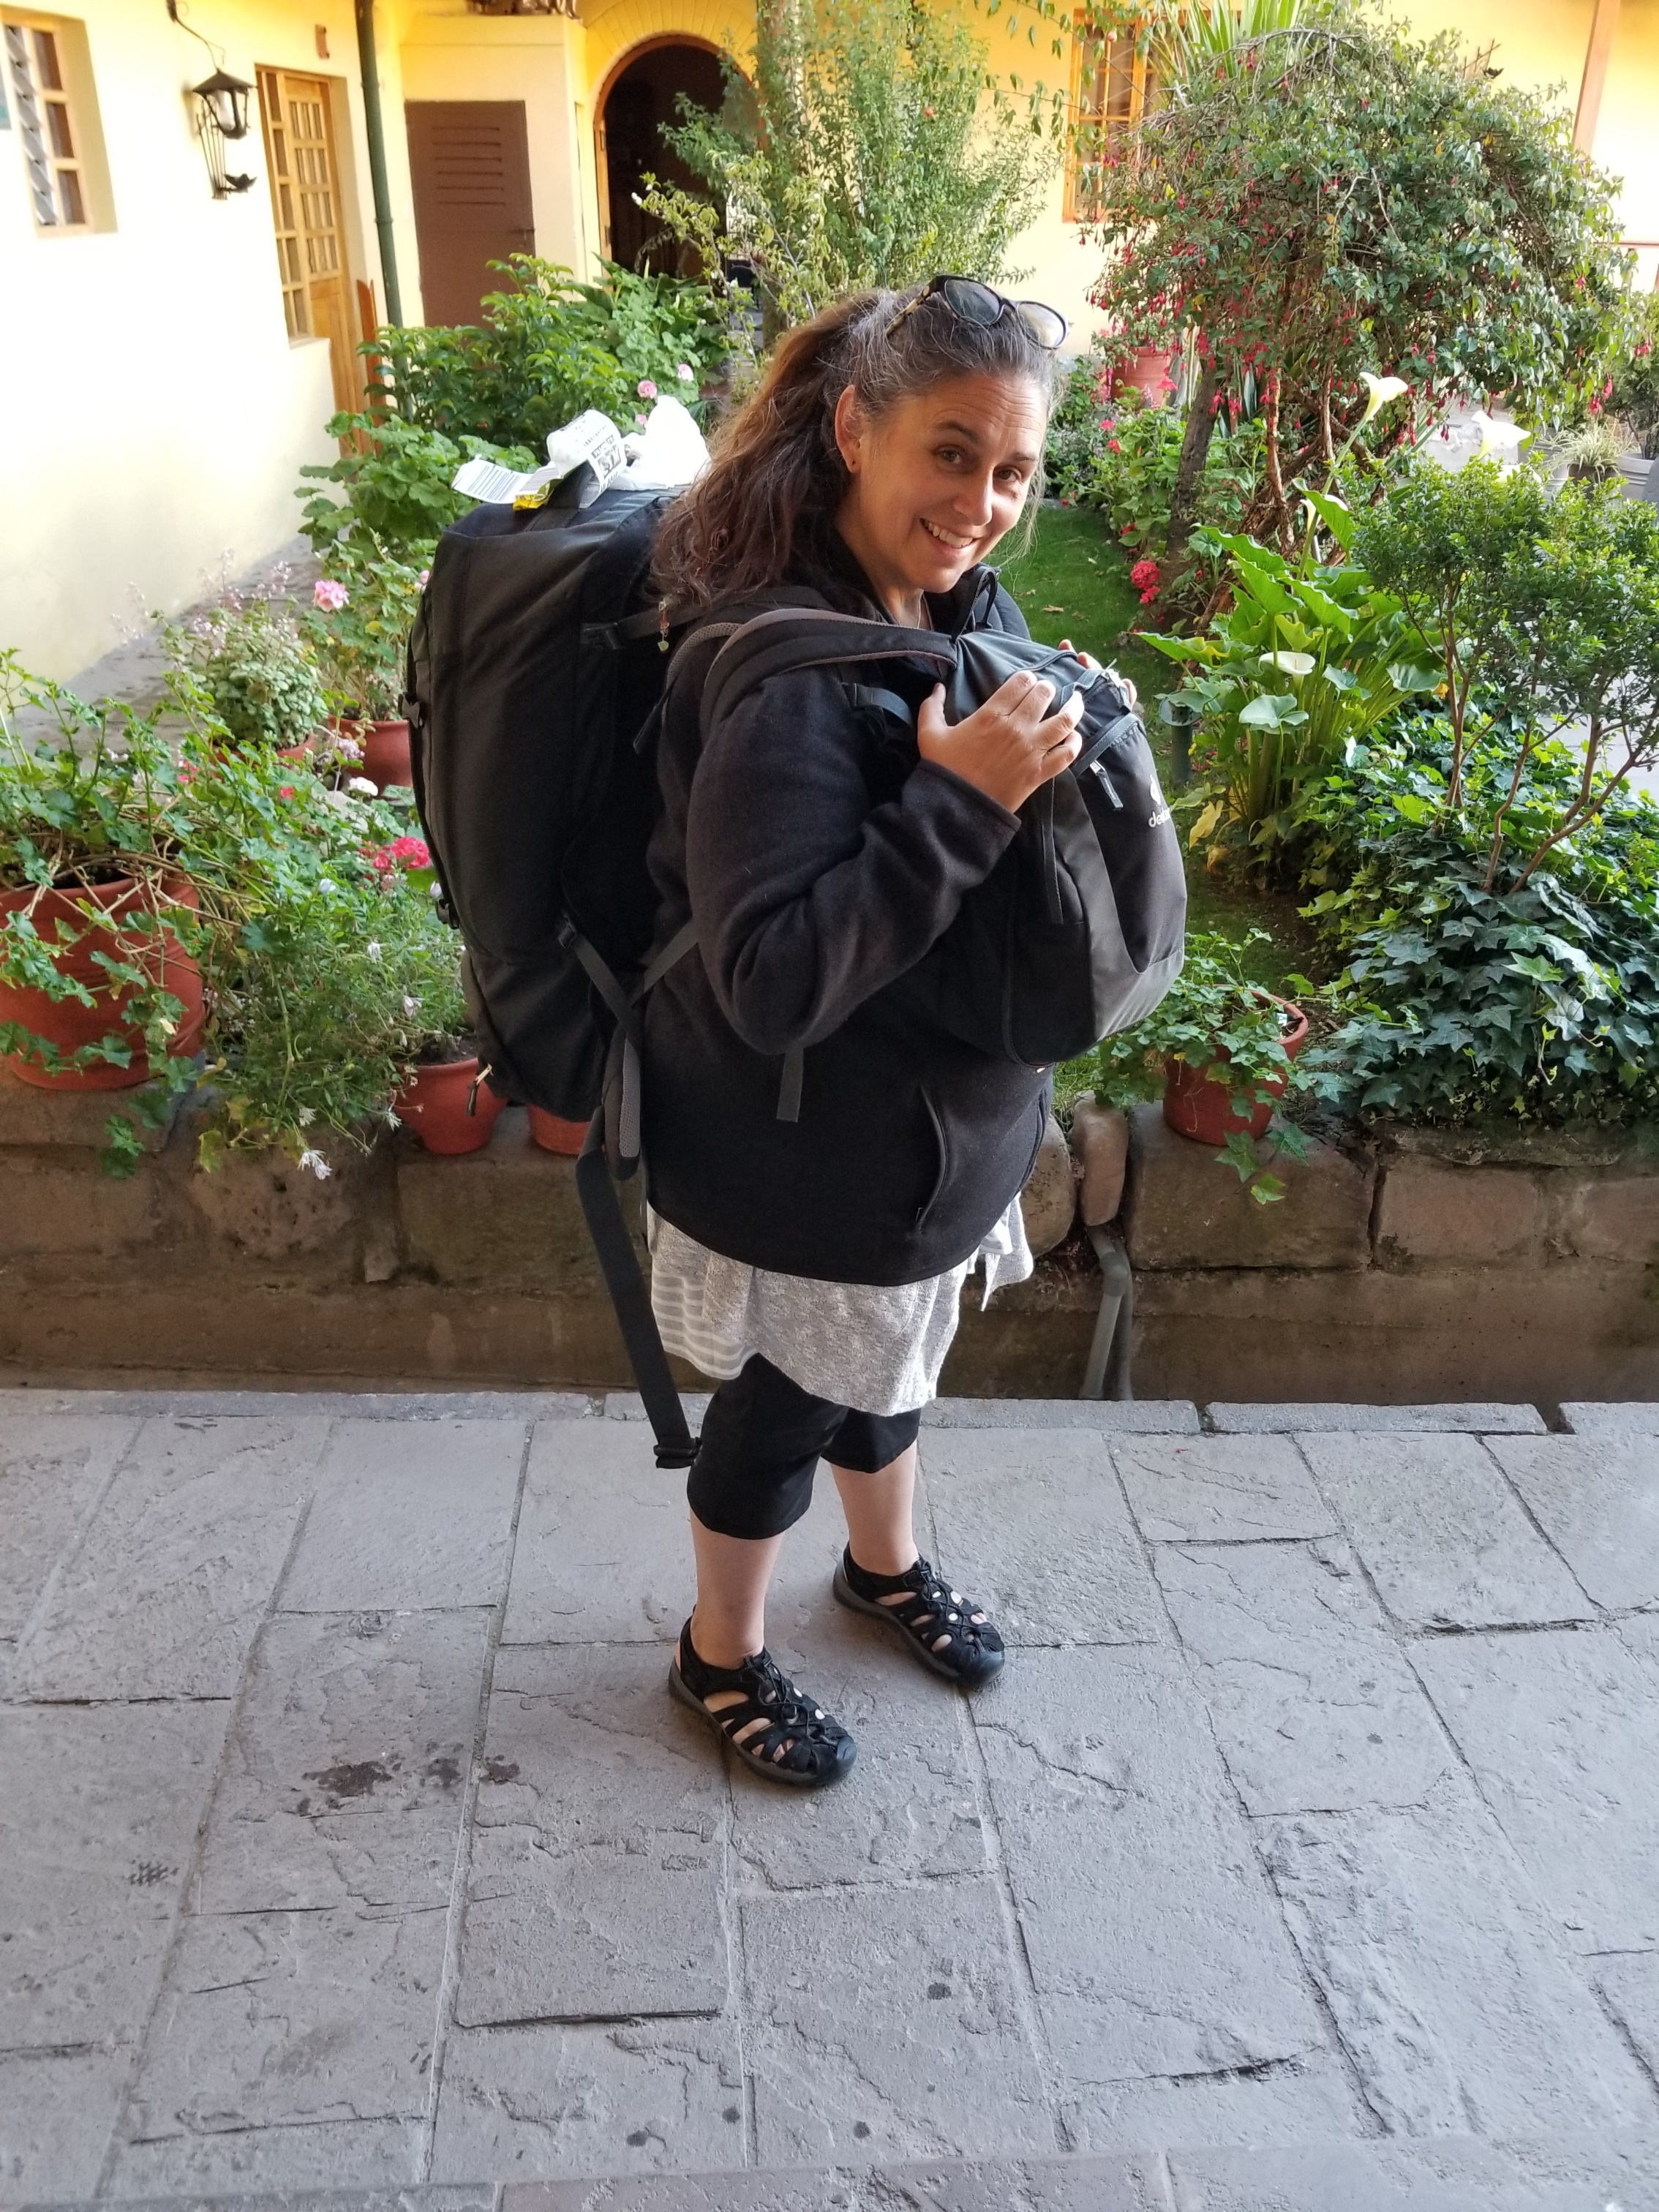 All loaded up in Cusco, Peru, with everything I could carry on my back (and front!), July 2019.